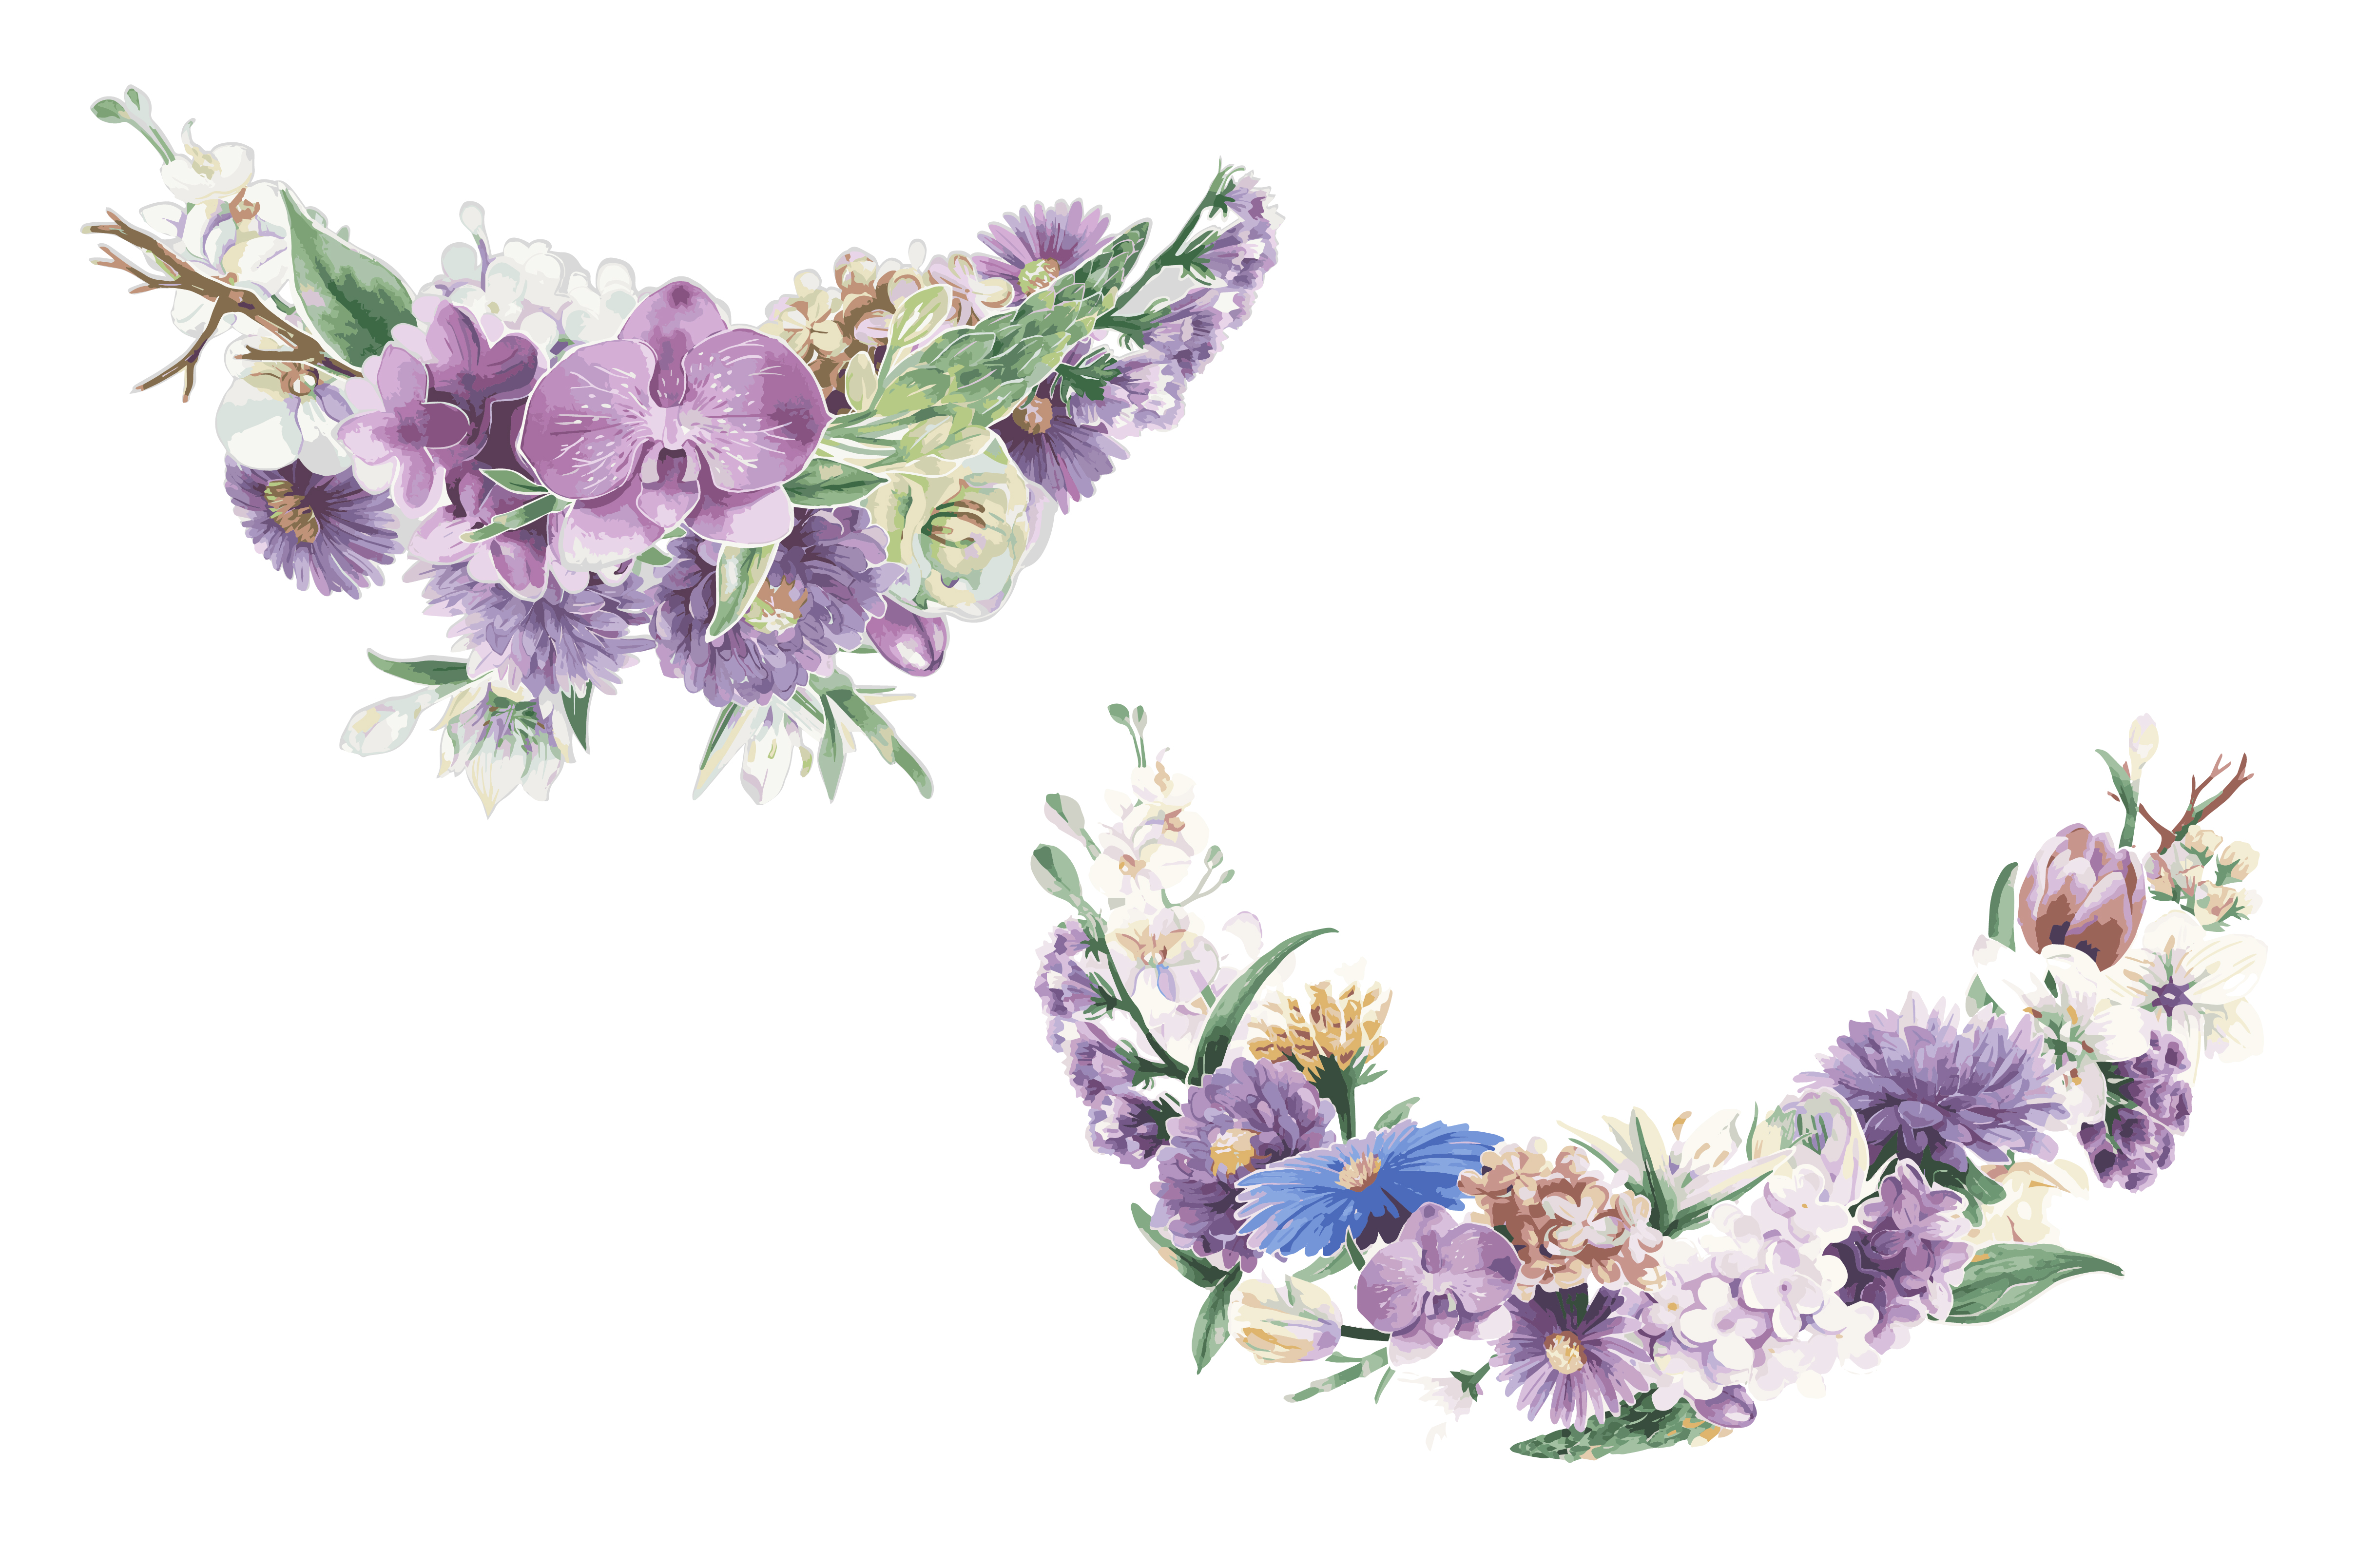 Floral Ornament Vector Free: Download Free Vector Art, Stock